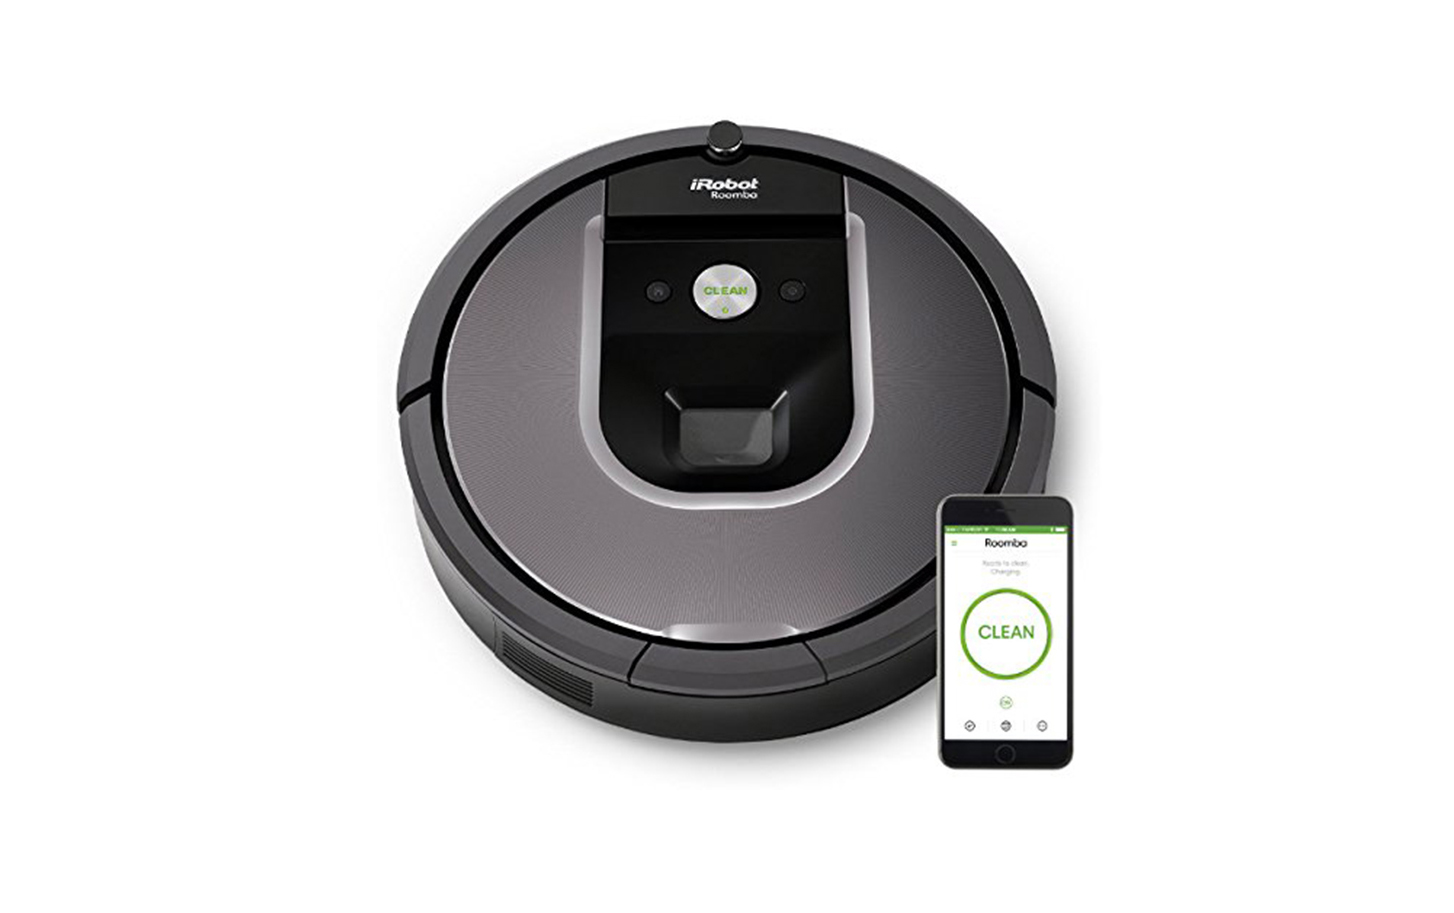 Wirecutter S Best Deals Save 120 On The Irobot Roomba 960